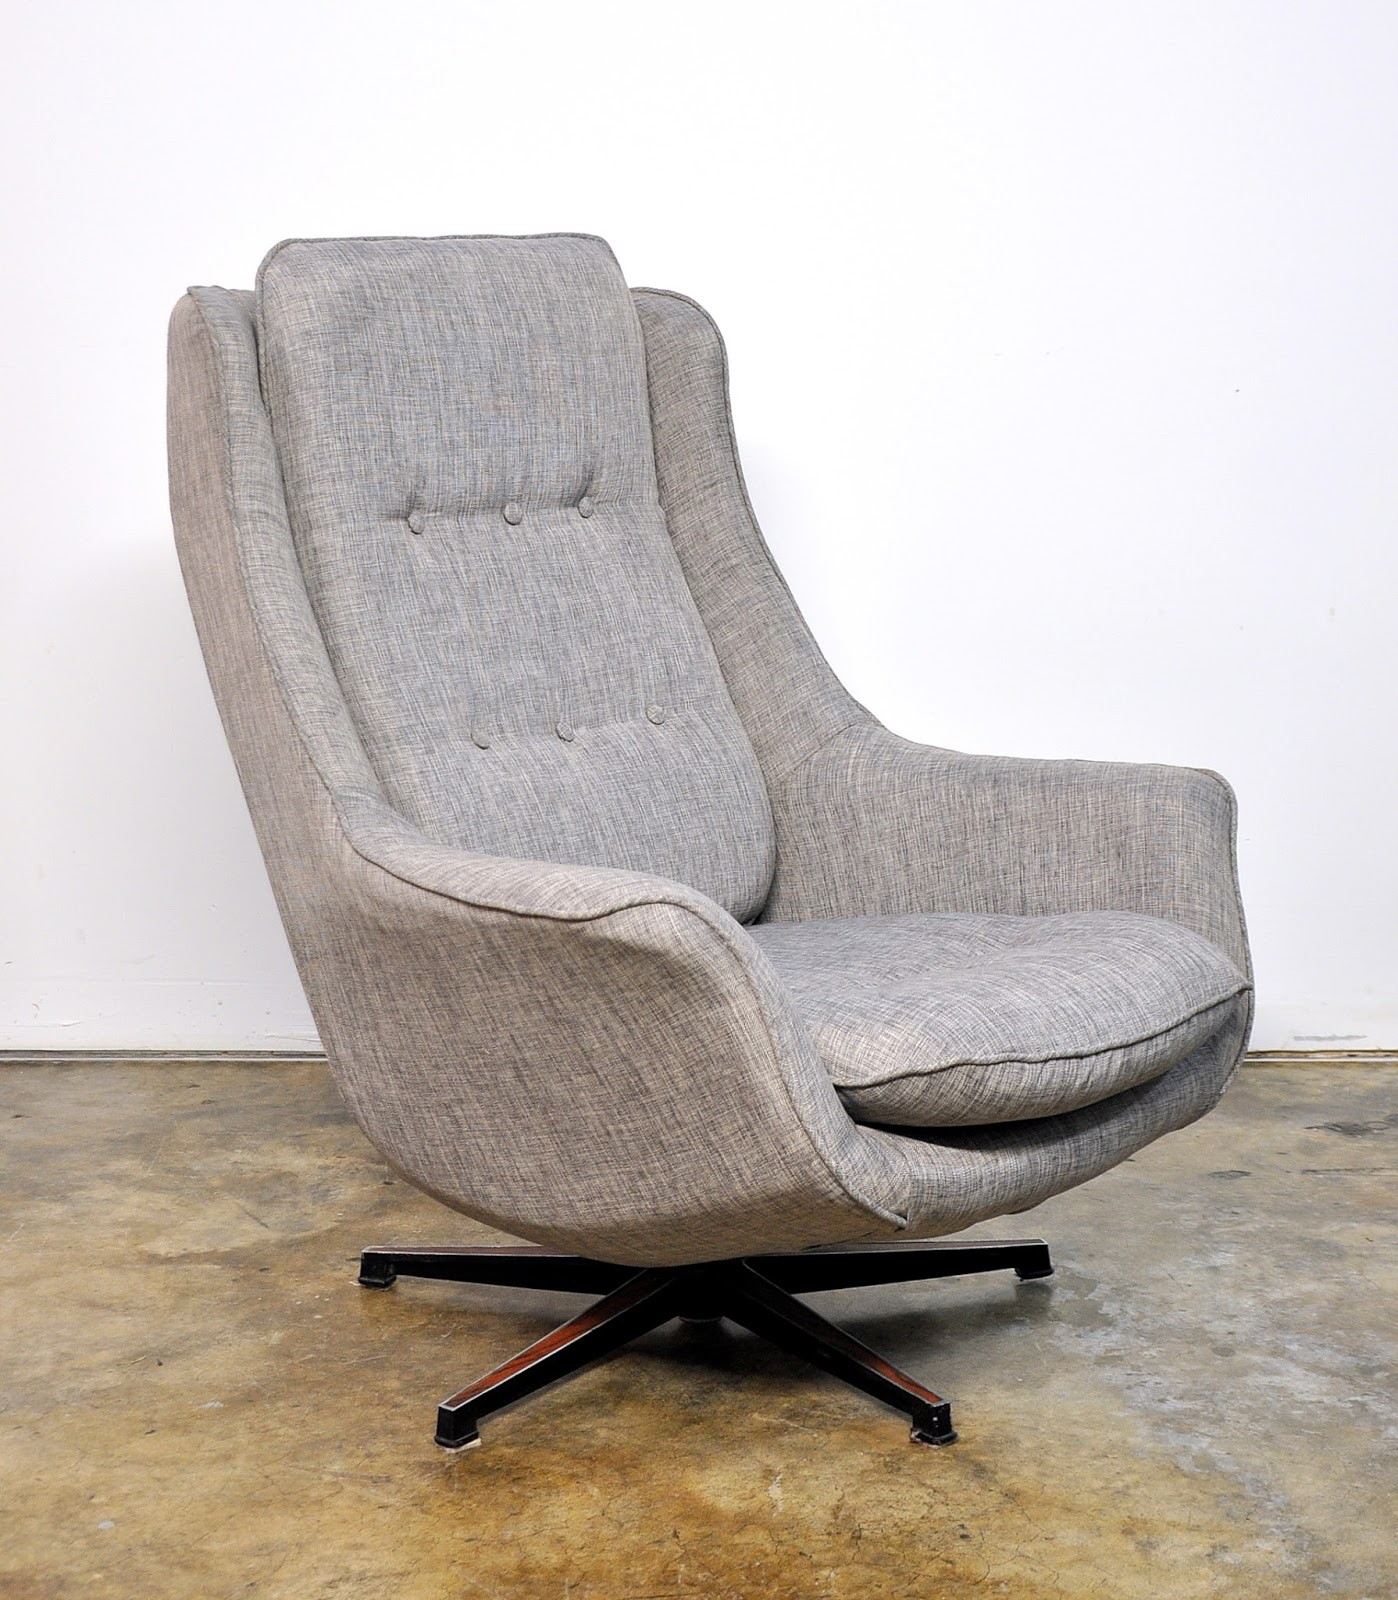 Milo Baughman Chair Lift Recliner Costco Select Modern: Mid Century Swivel Lounge